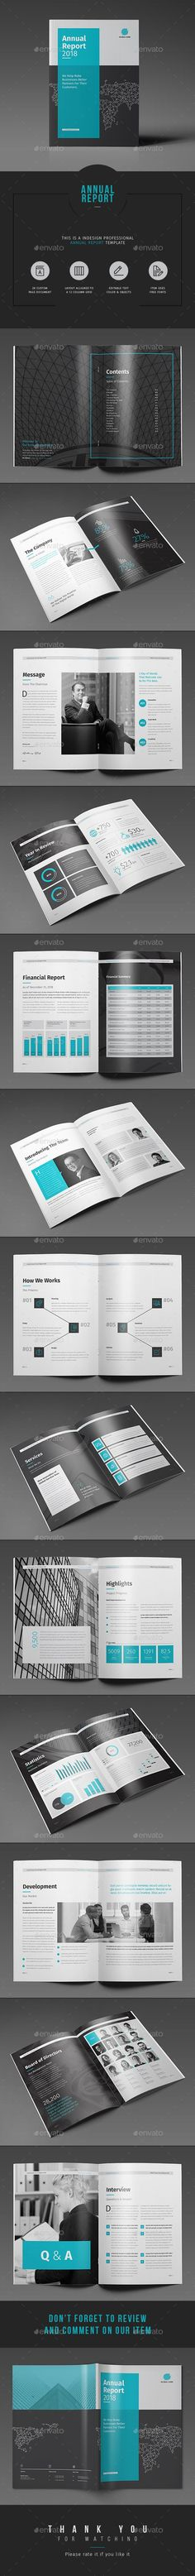 Haweya Annual Report 03 Indesign templates, Annual reports and - professional report template